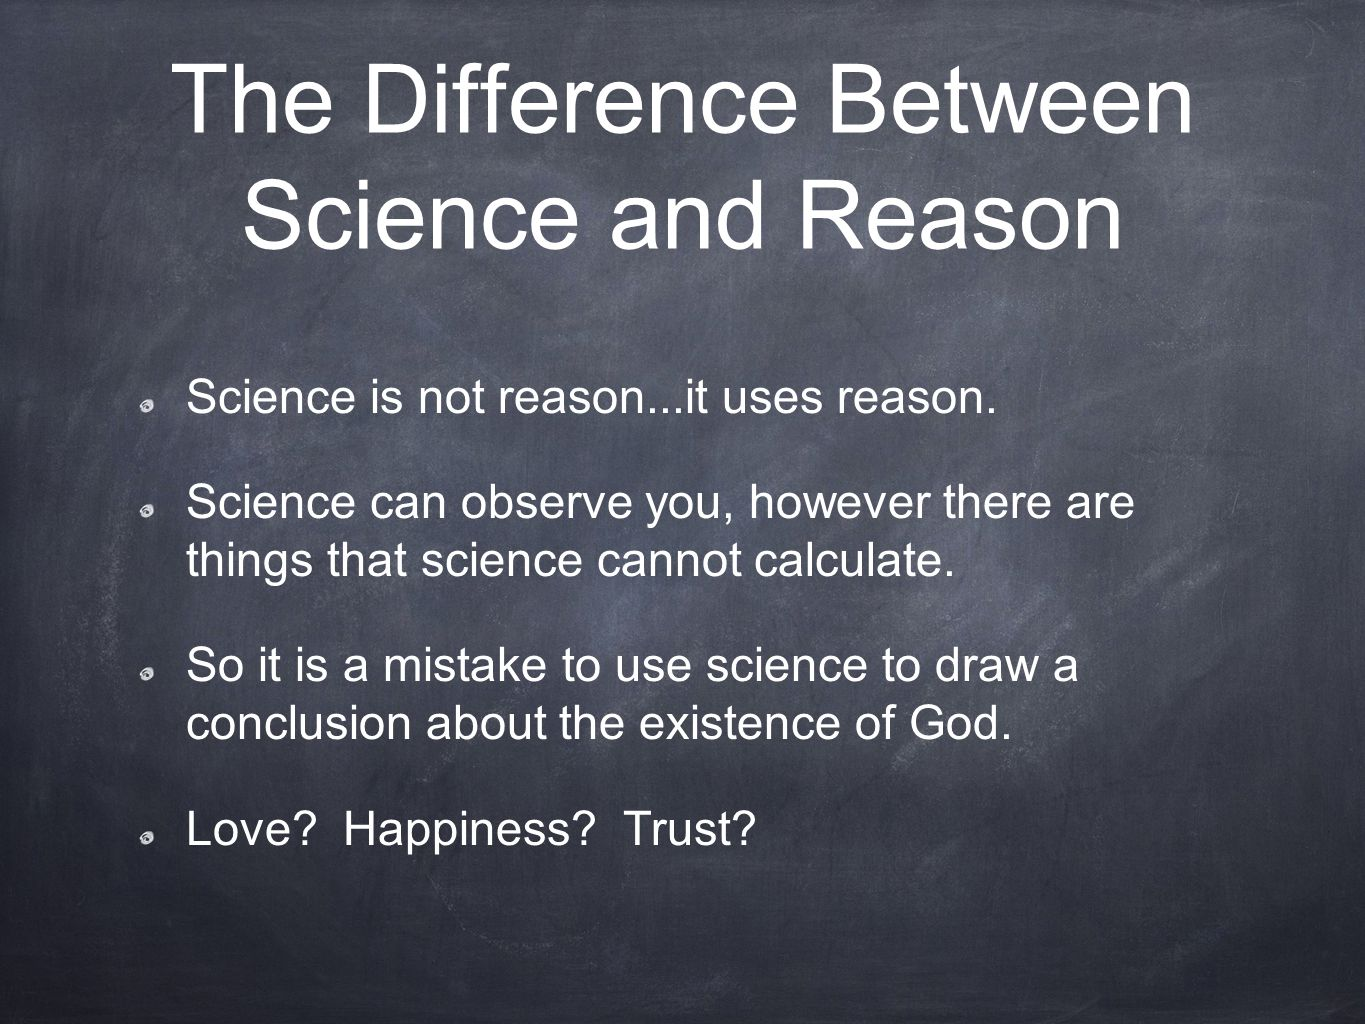 The Difference Between Science and Reason